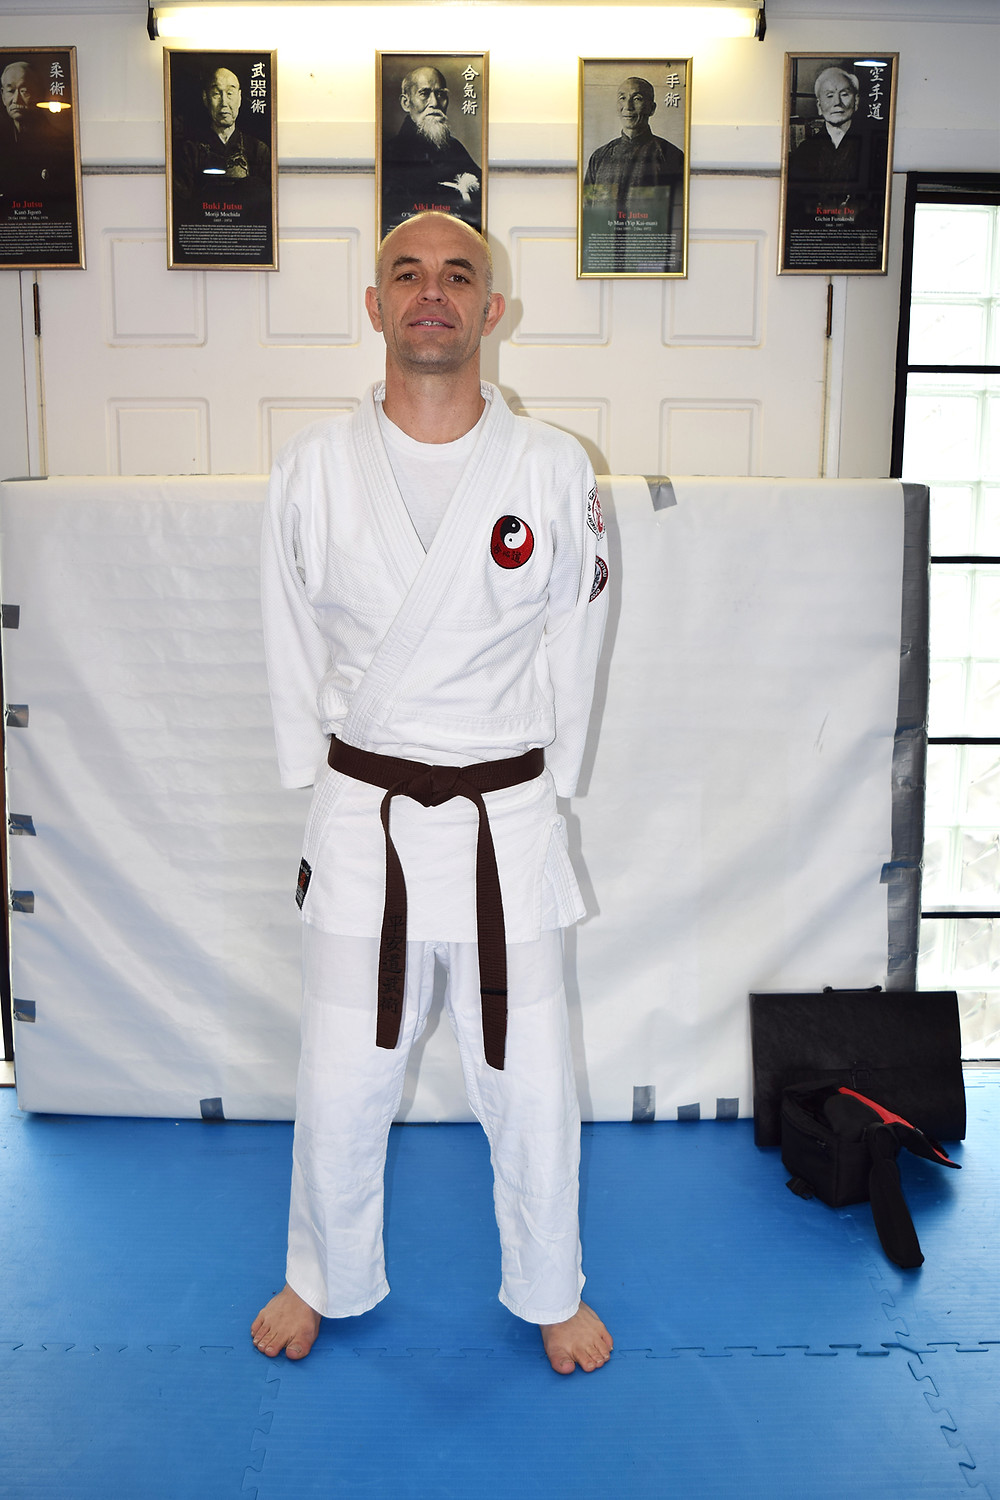 Graded at Heian Do Bujutsu Ryu